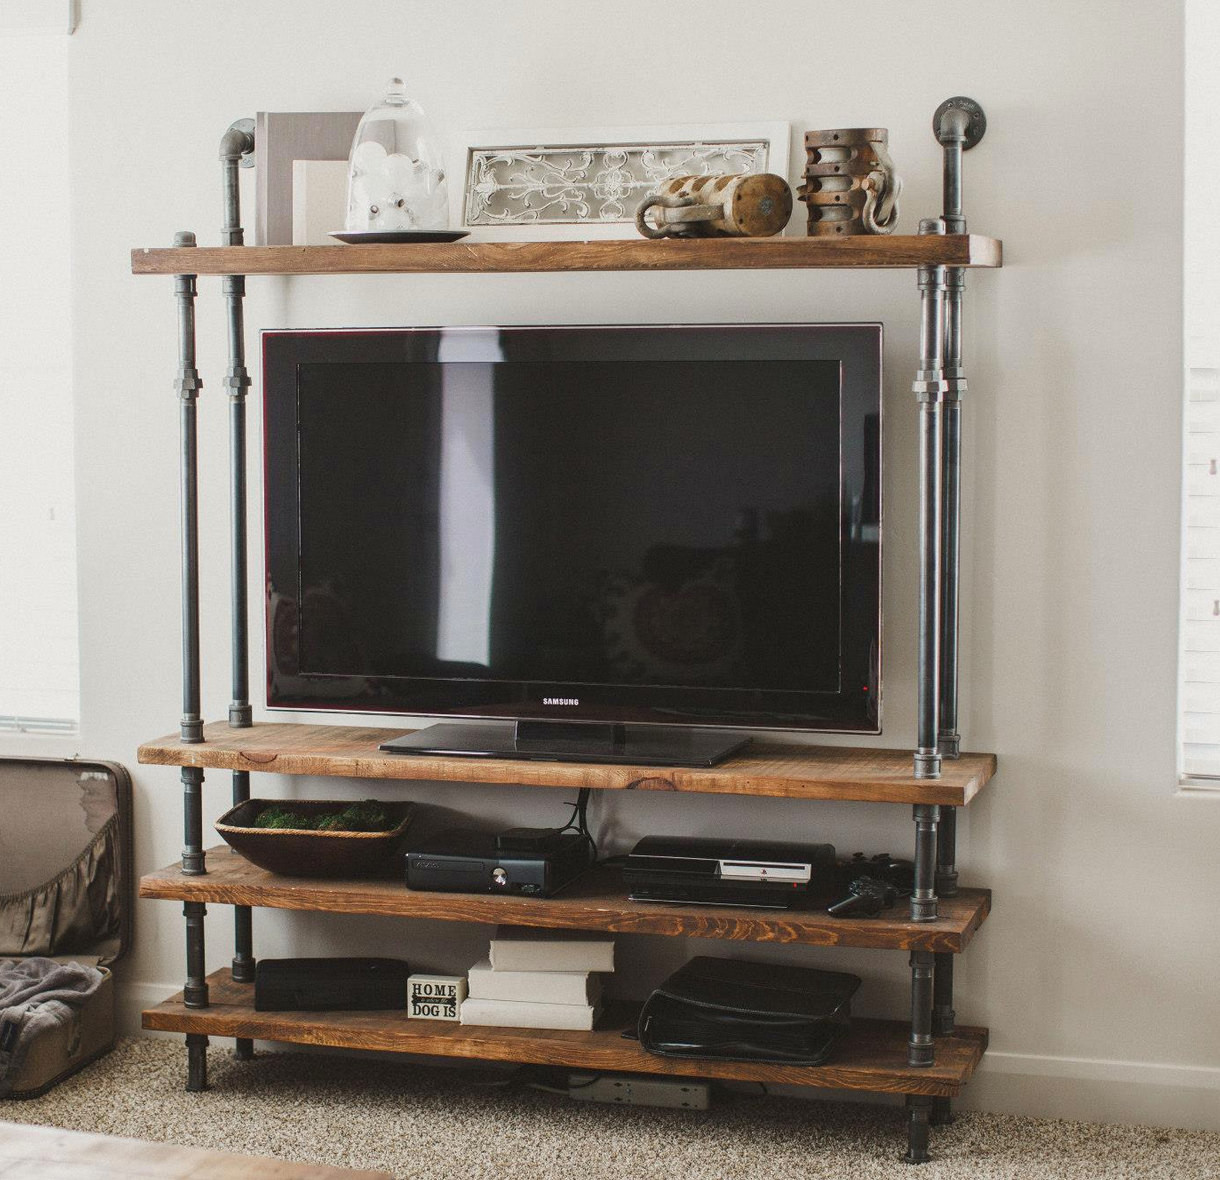 Best ideas about DIY Pipe Tv Stand . Save or Pin How to Choose a TV Stand Now.